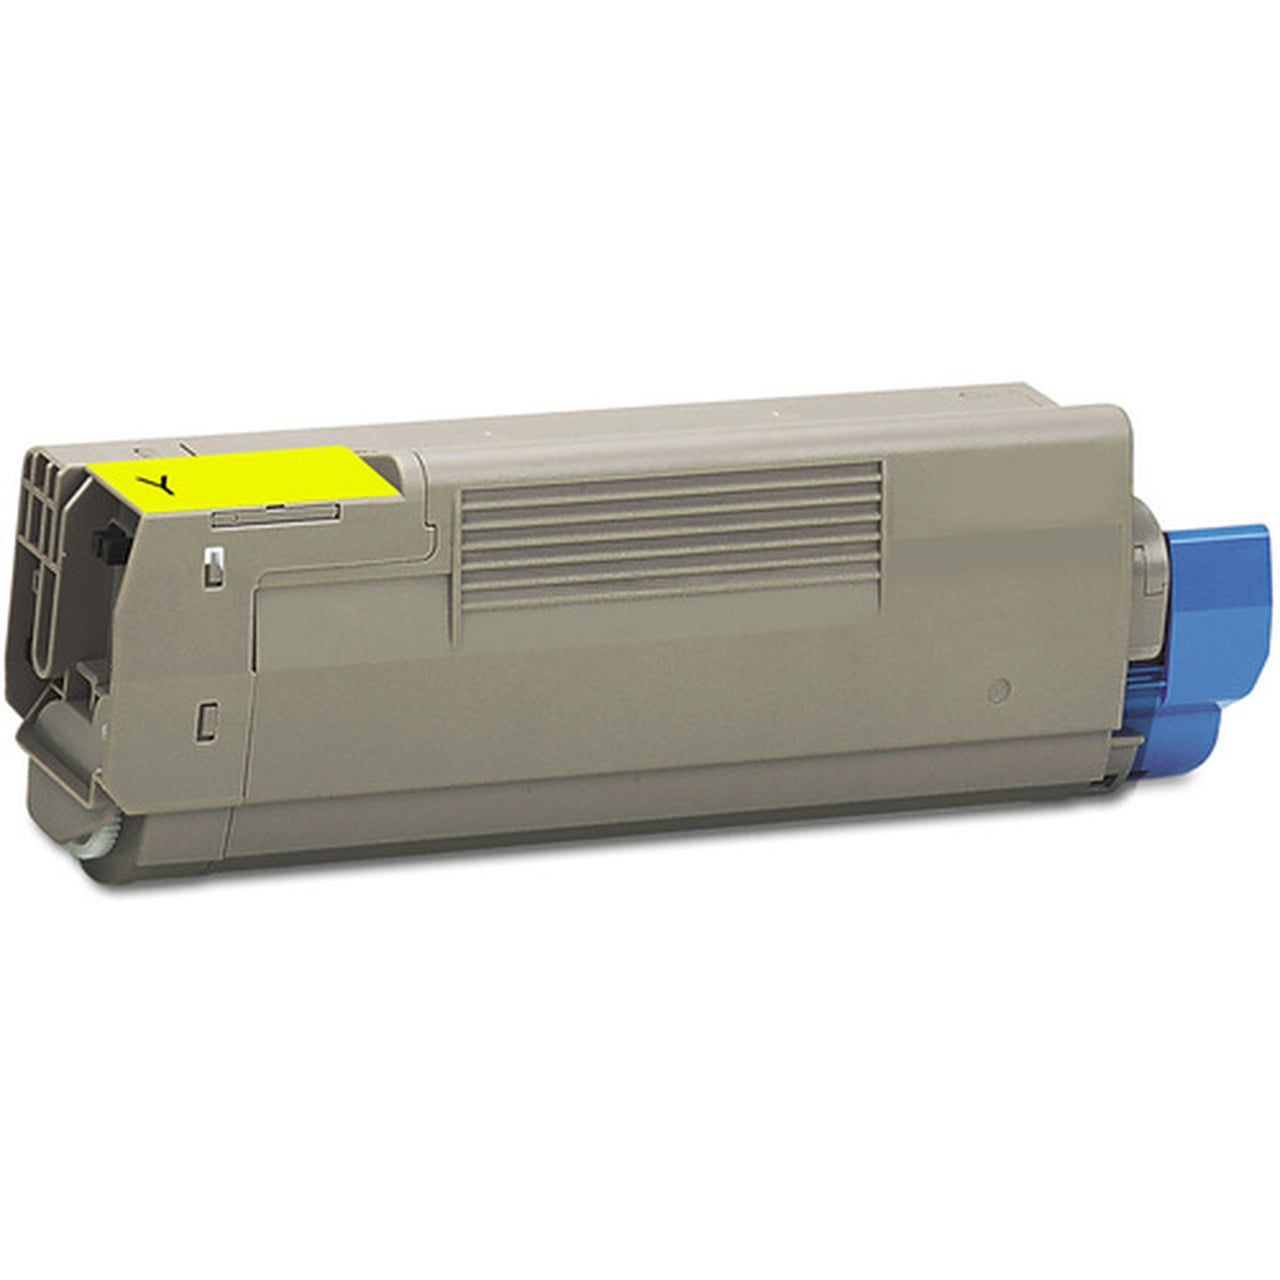 43866101 Toner Cartridge - Okidata New Compatible  (Yellow)